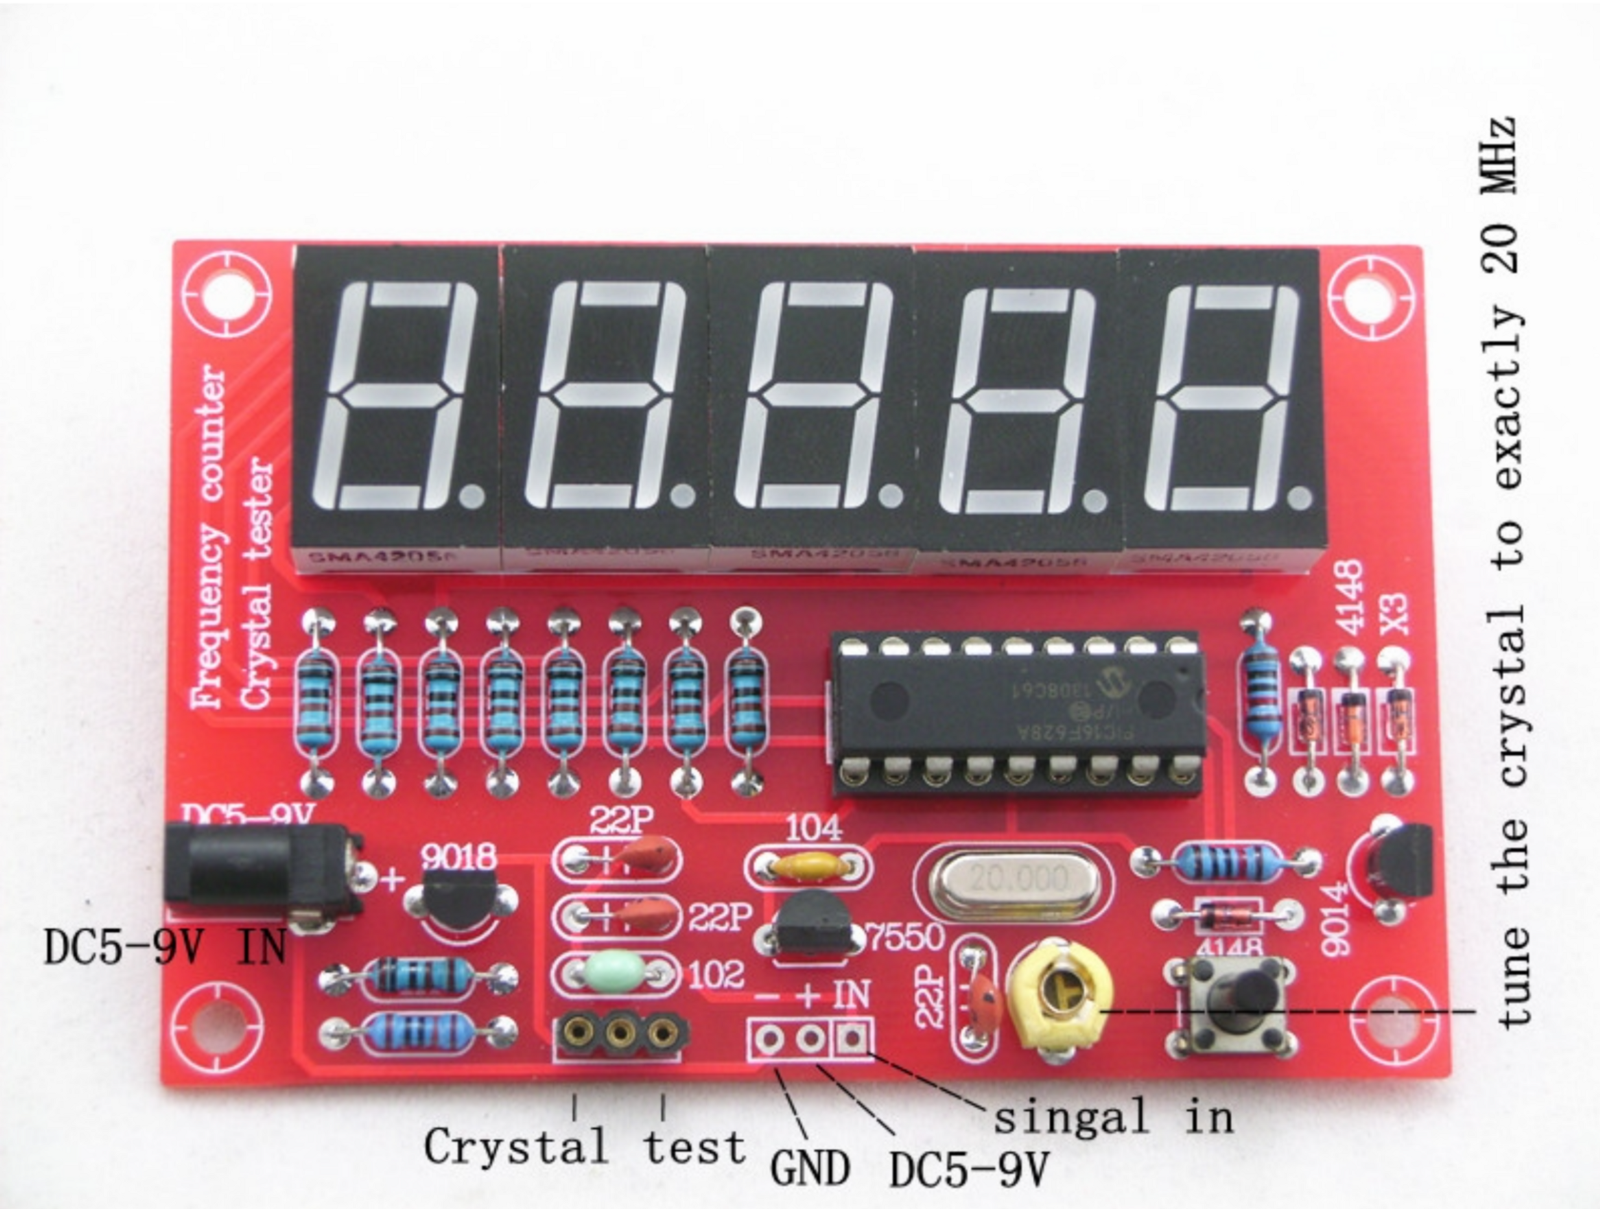 Crystal Oscillator Tester Frequency Counter Kit Review It Says Lt103 On The Schematic I Am Using Lm324 A Quad Opamp And There Is Programming Mode Entered By Long Pressing Pushbutton Manual Also Test Range About 1m 45m Although Does